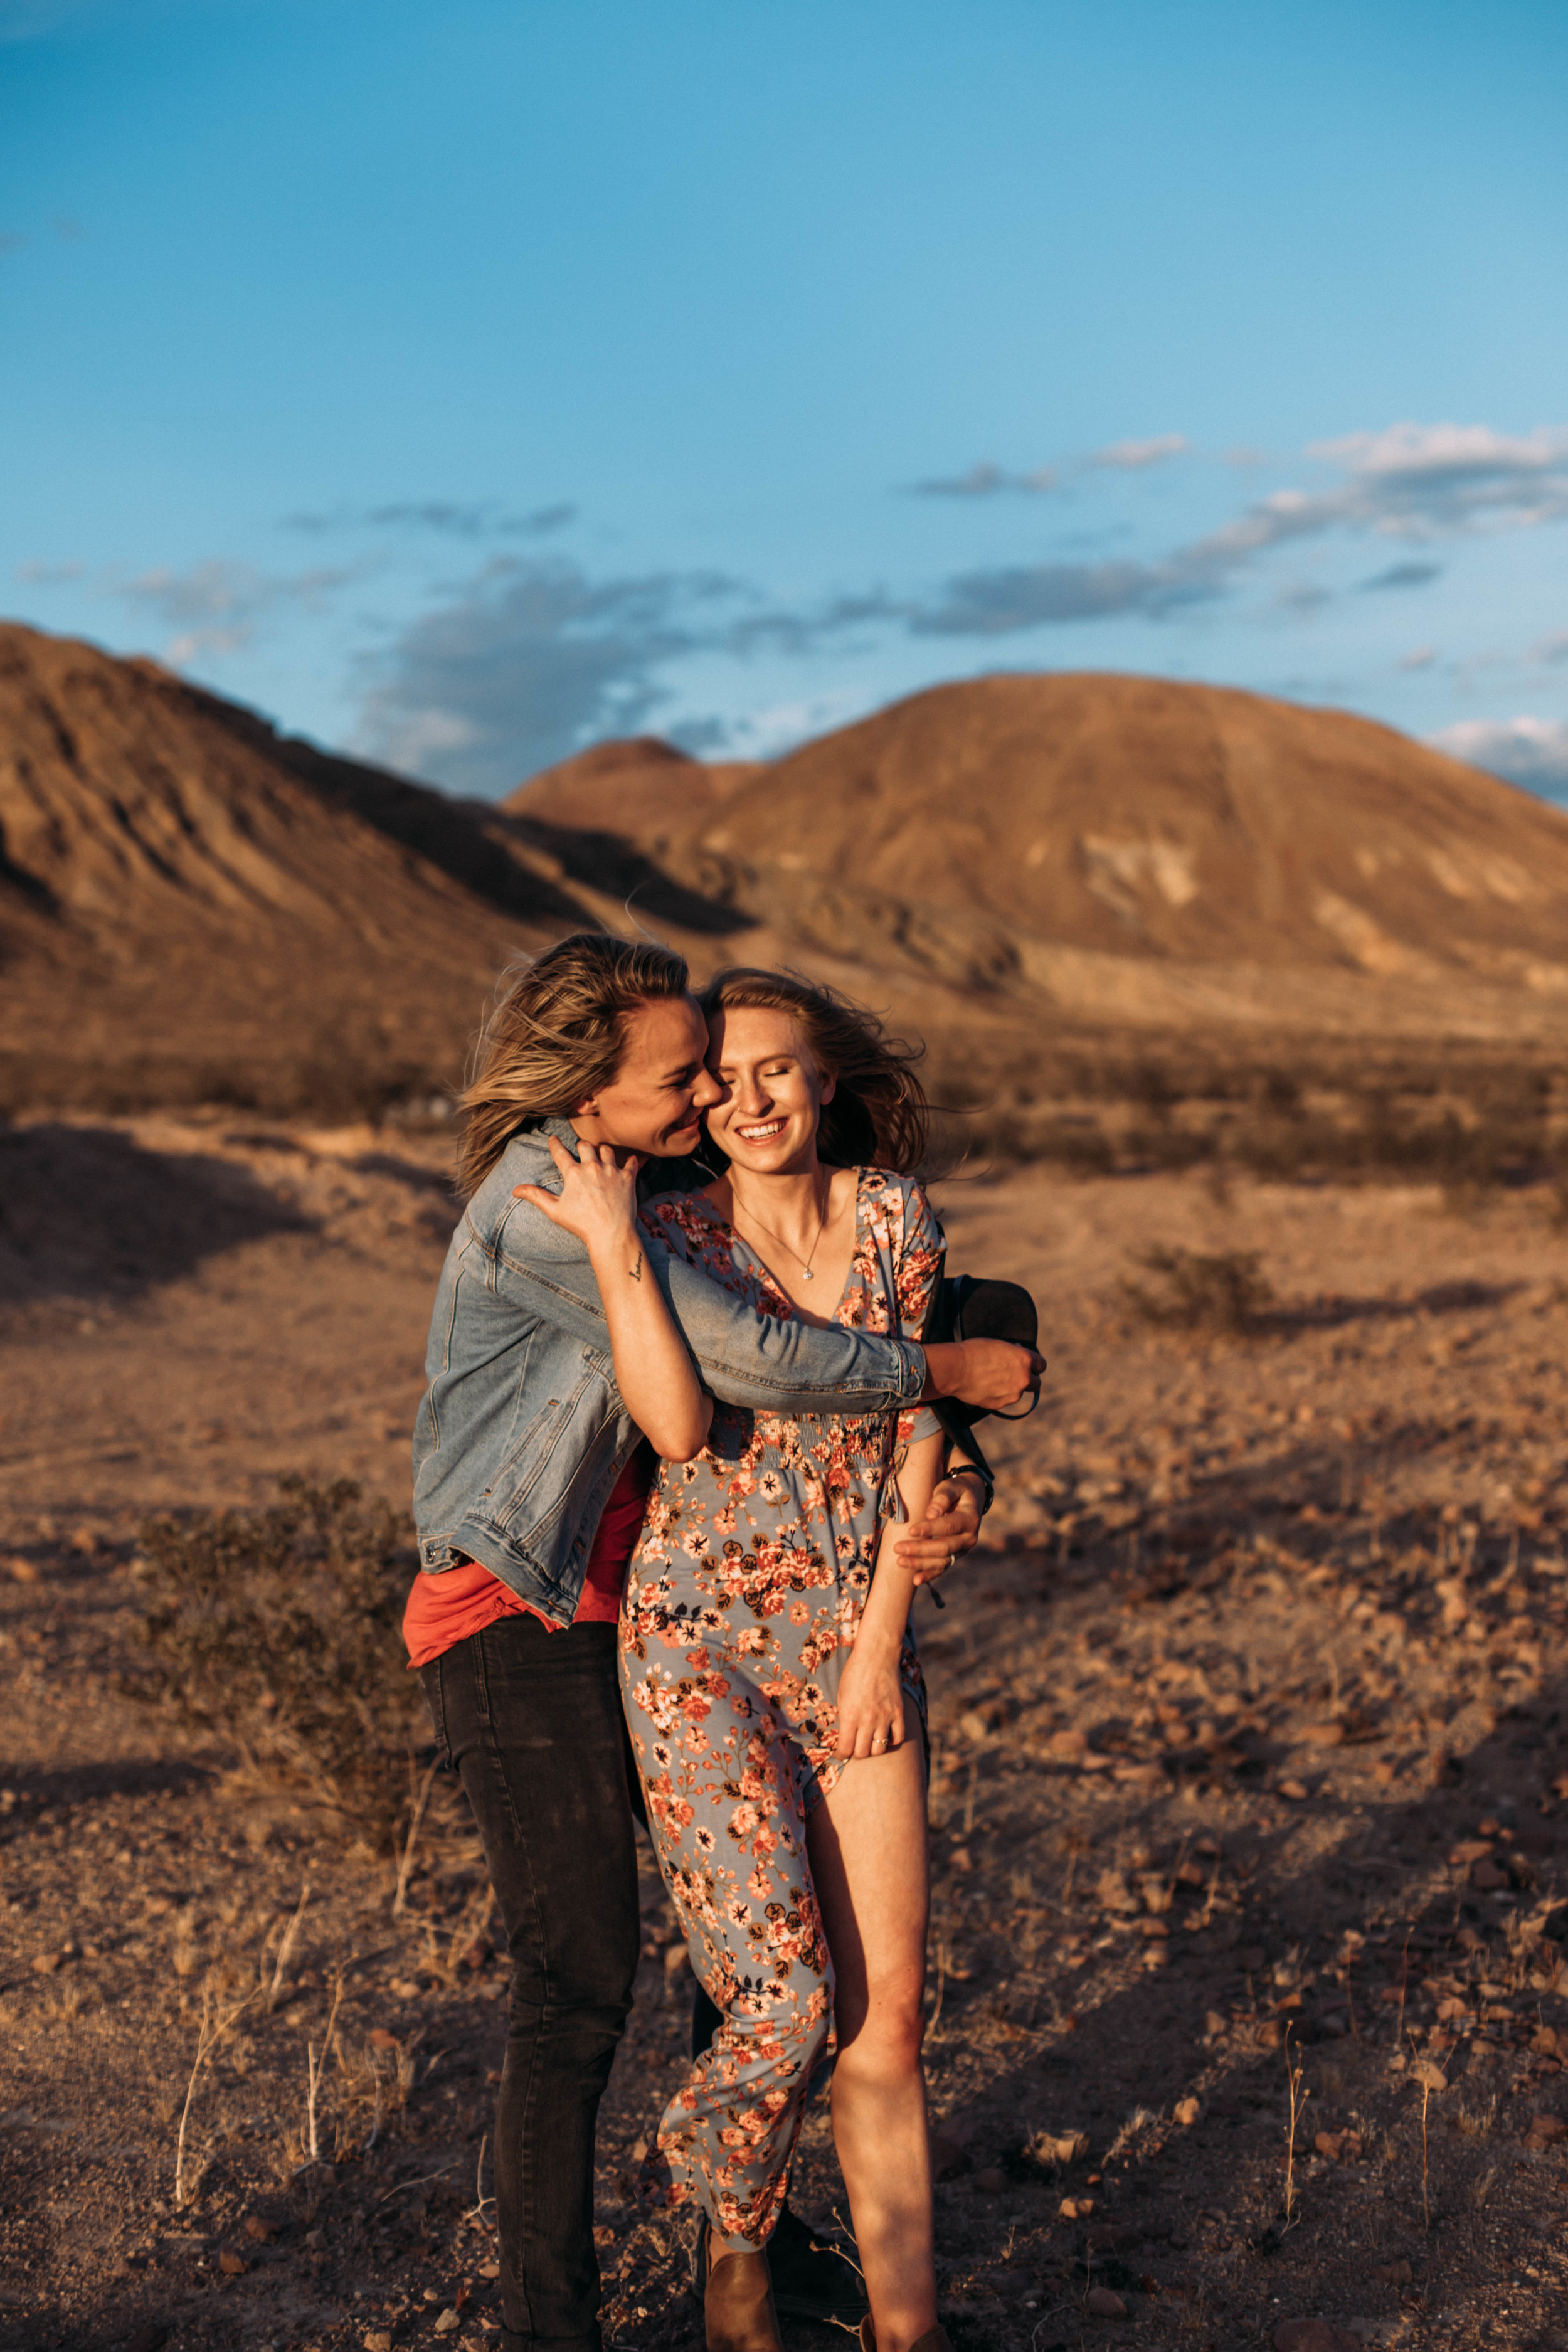 Brenna + Taylor | Ashlyn Savannah Photo | Las Vegas Photographer-185.jpg